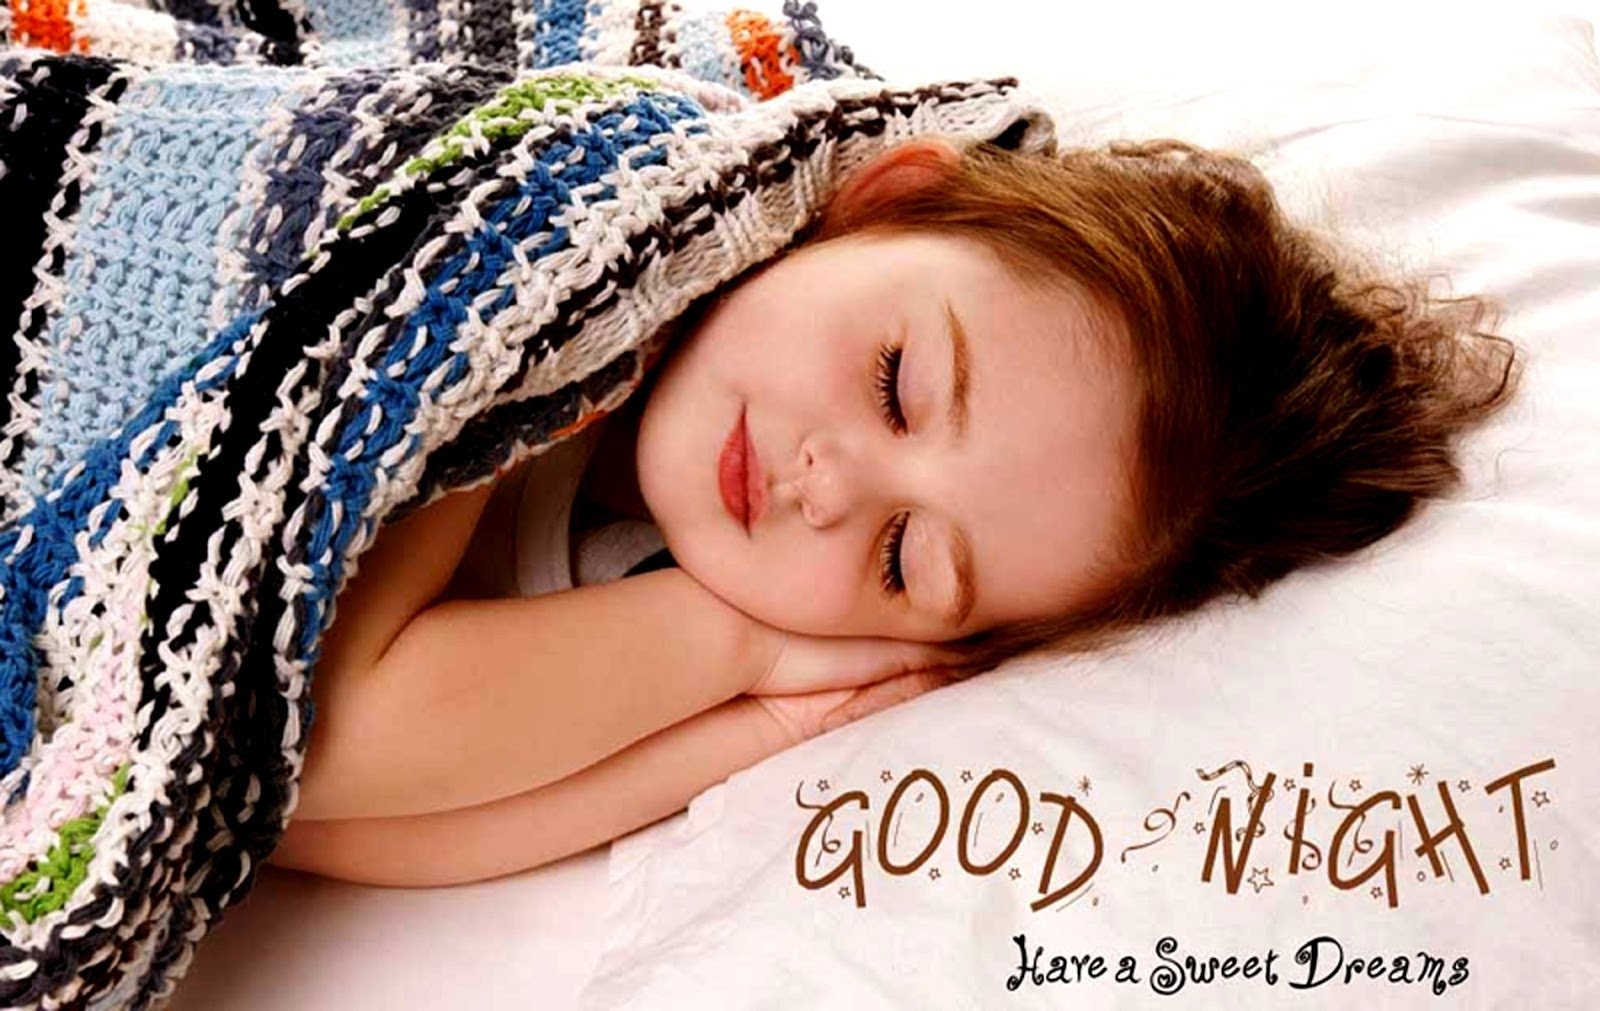 Best 50 Beautiful Good Night Cute Images 123gettyimages